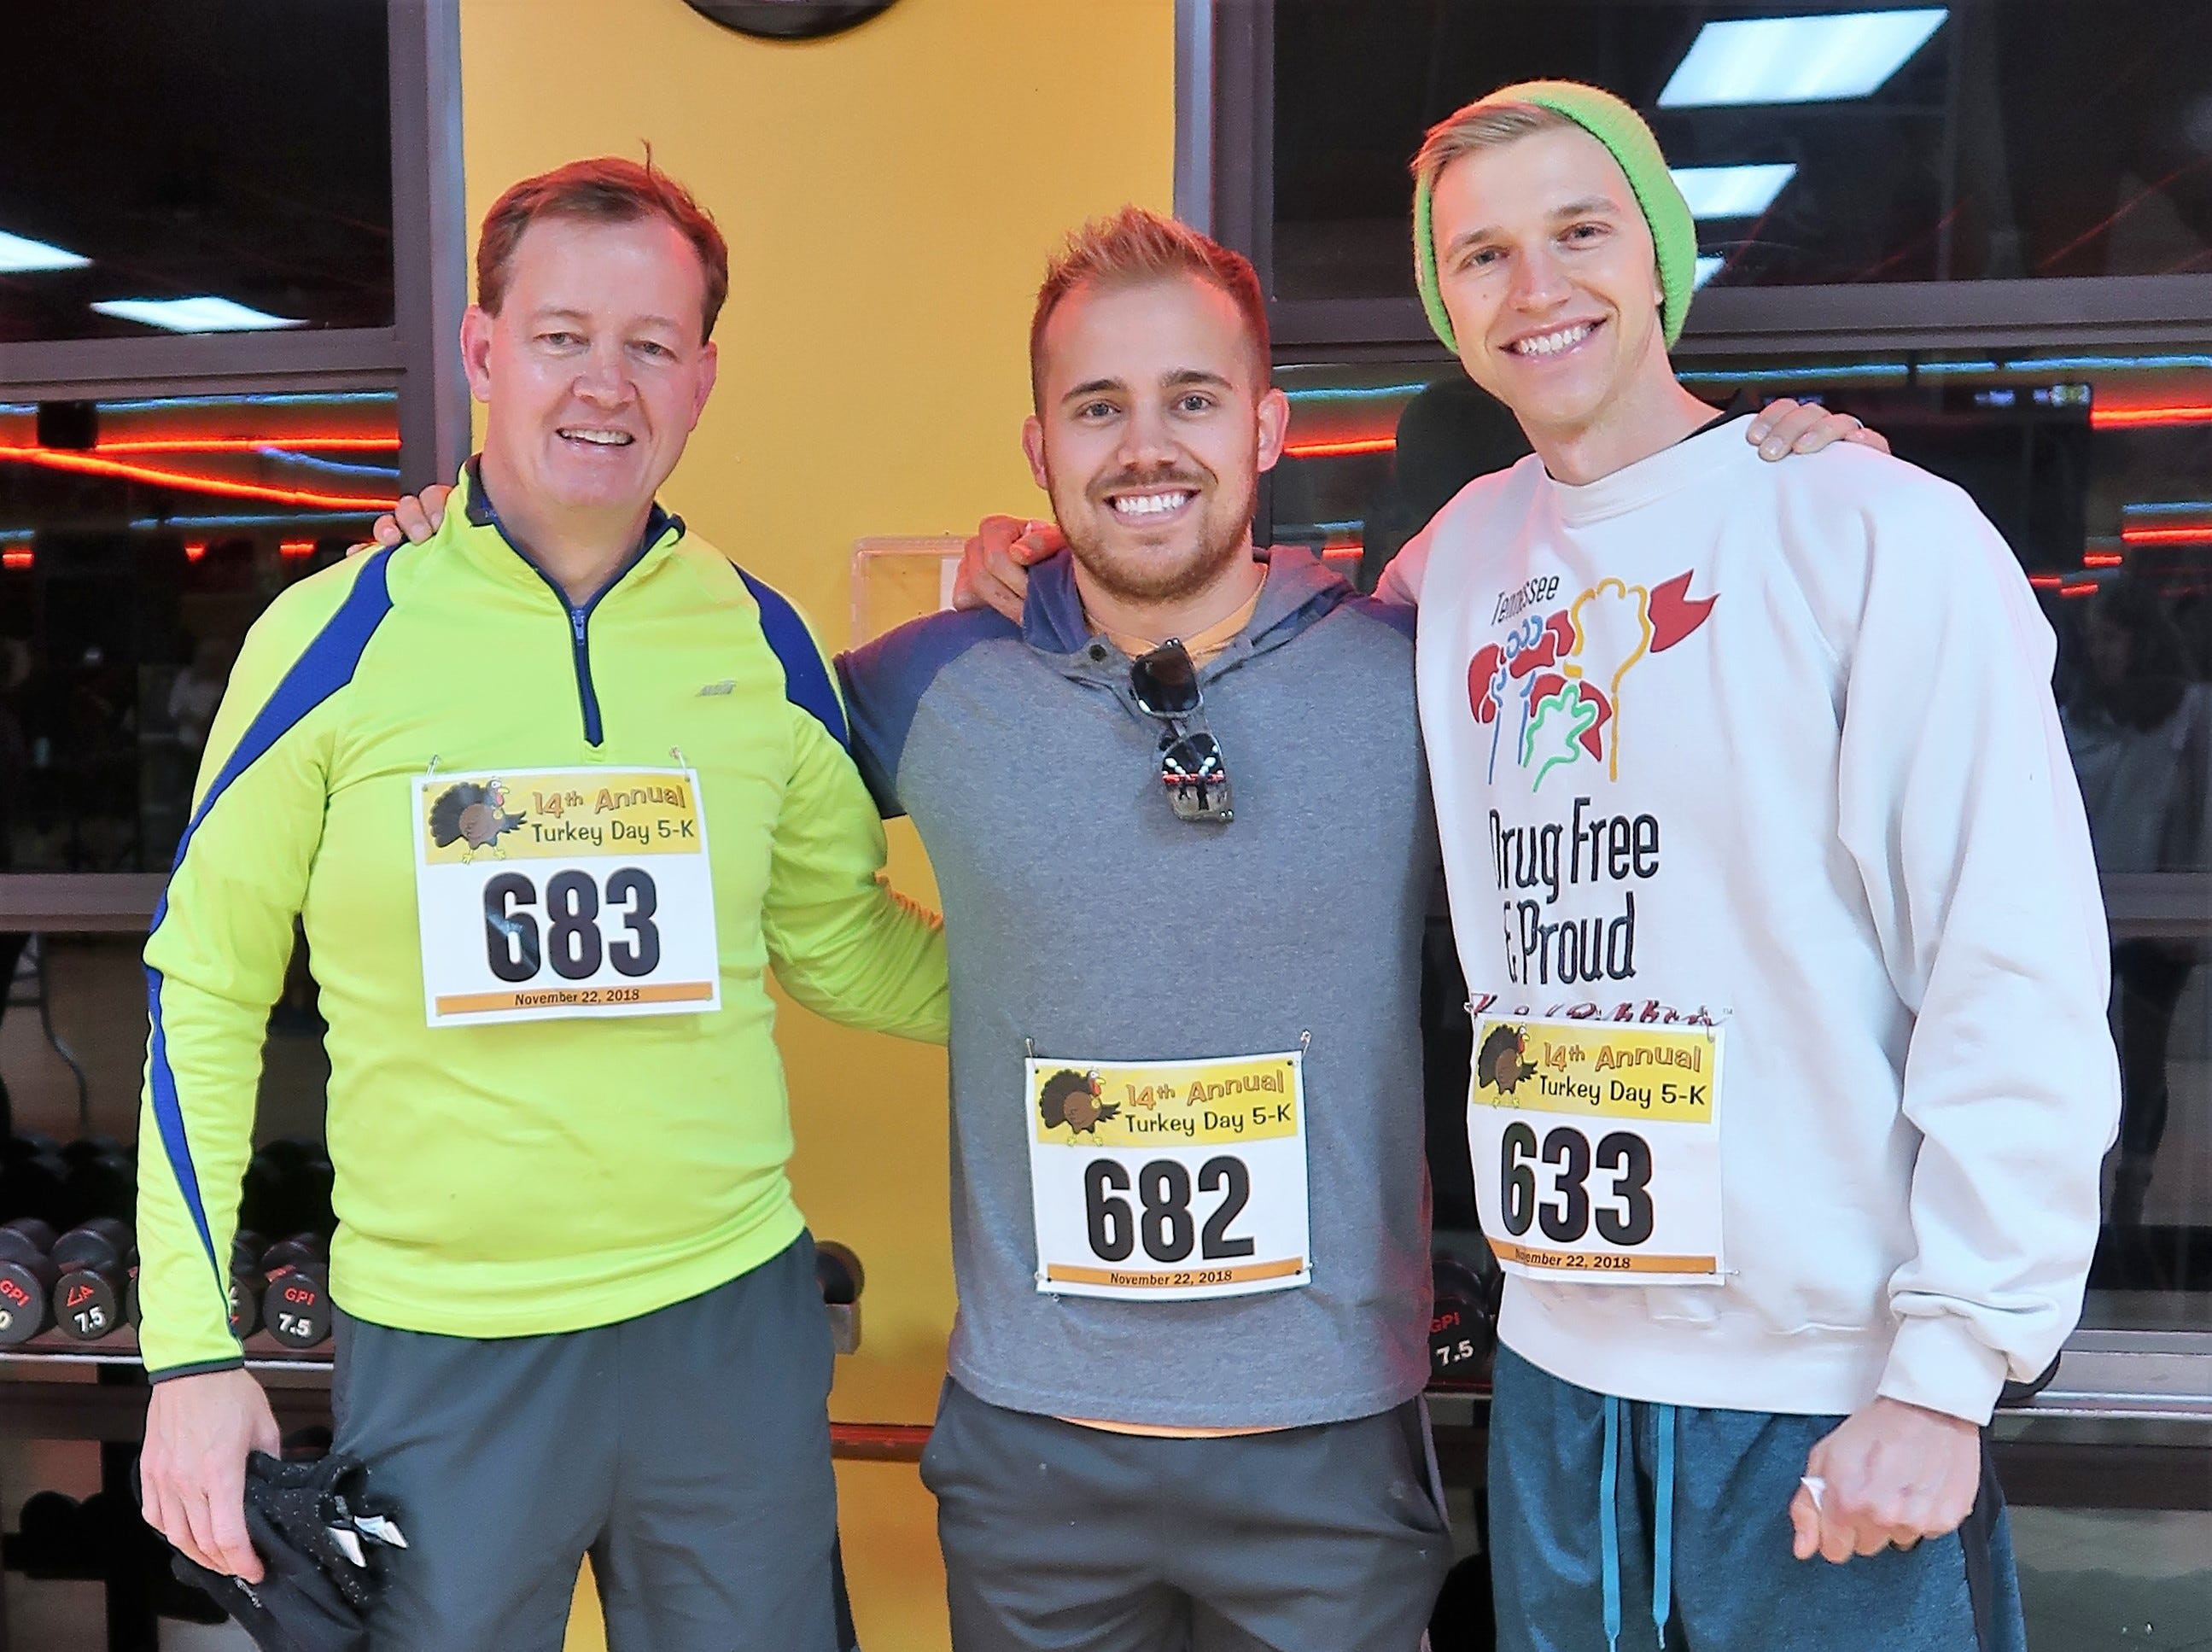 GoldÕs Gym held the 14th annual Turkey Day 5K to benefit RIFA on Thursday, November 22, 2018.  Over 1,000 runners were expected to participate in the event.  The race began and ended at GoldÕs Gym.